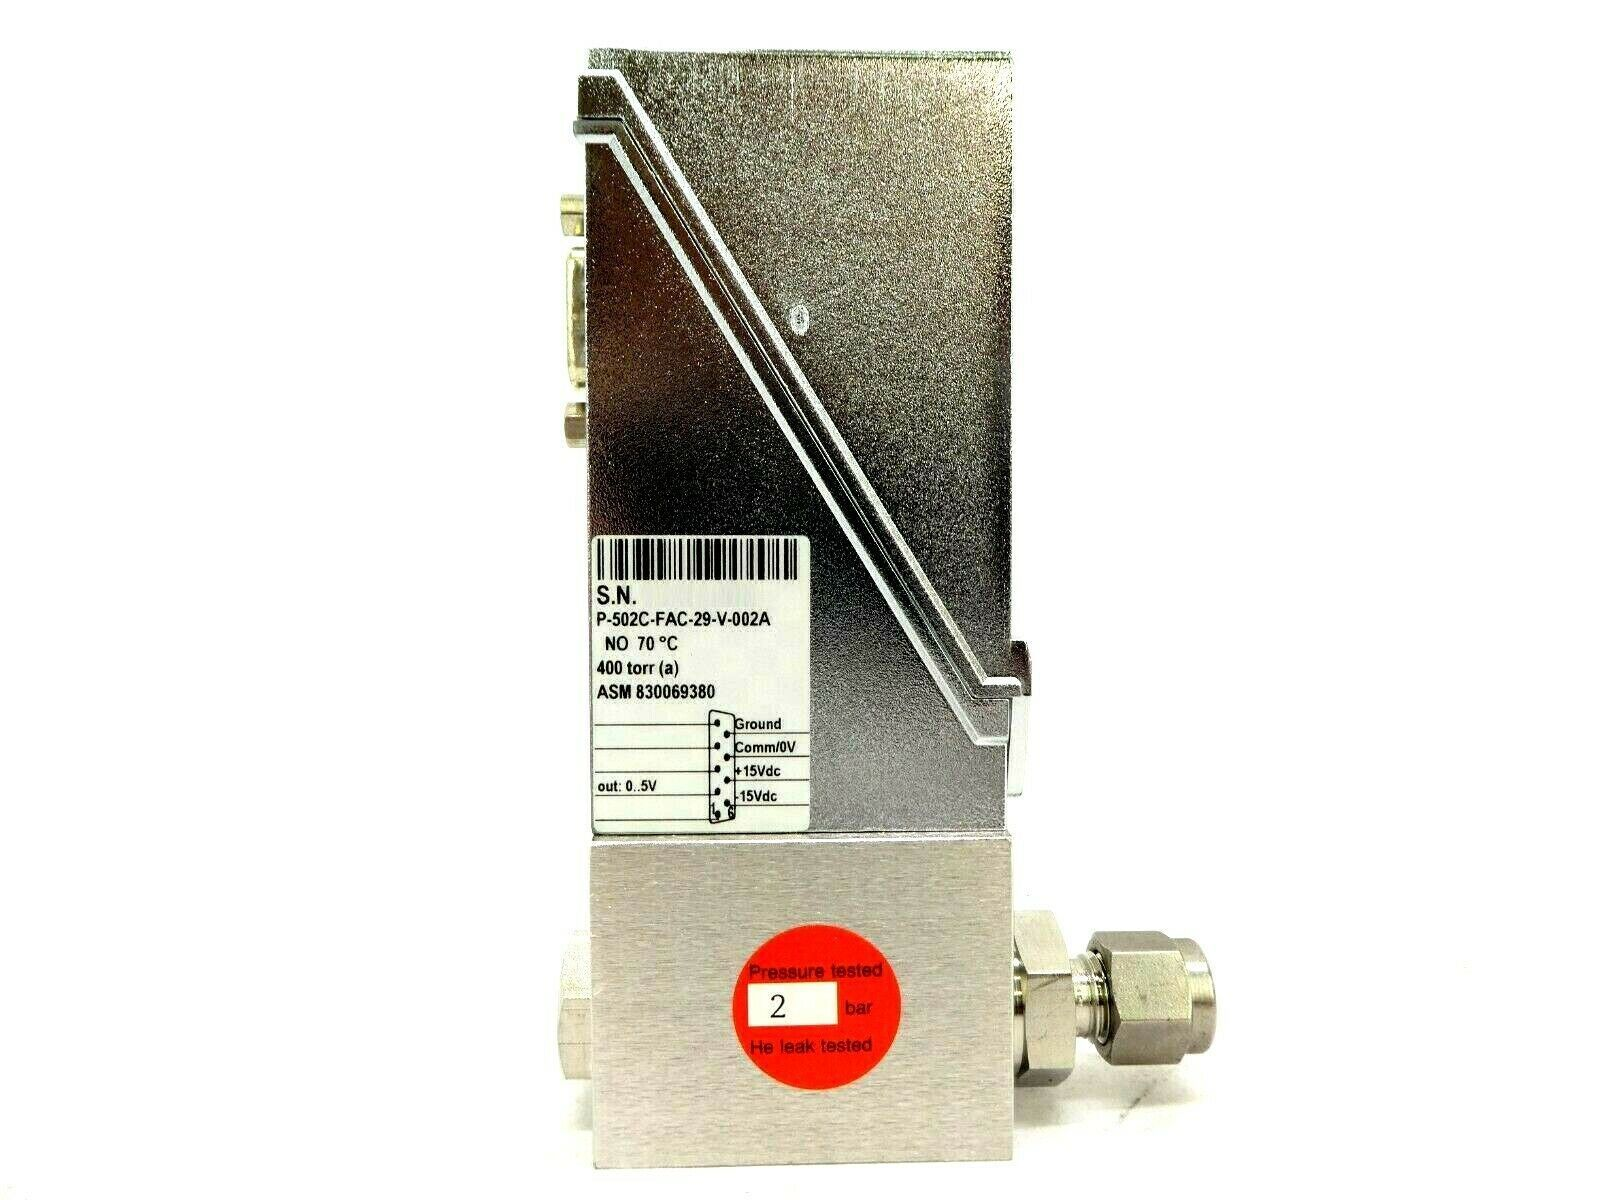 Bronkhorst P-502C-FAC-29-V-002A Pressure Controller EL-PRESS ASM 830069380 New